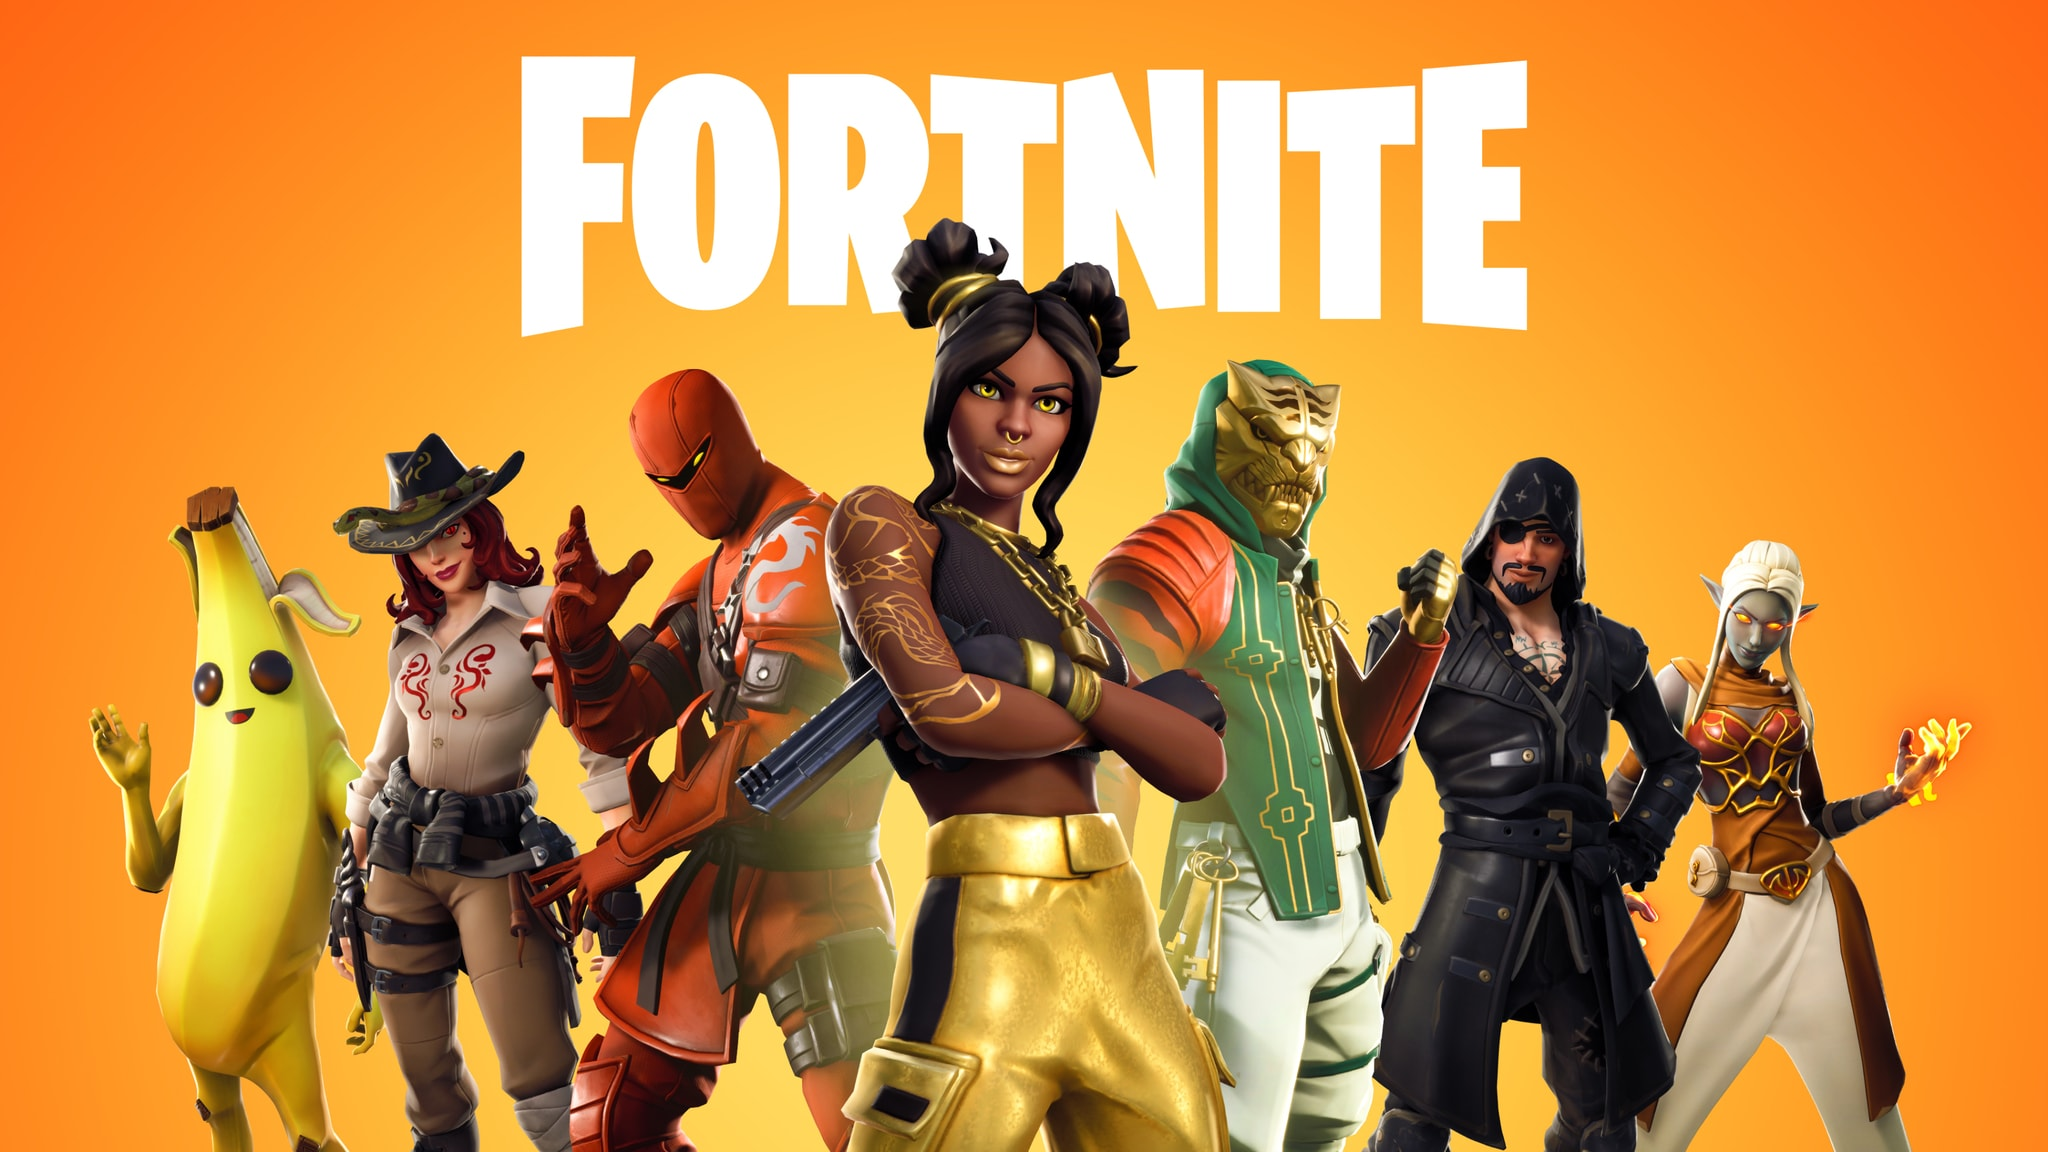 Fortnite v8.30 Patch Notes Include Fly Explosives Limited Time Mode